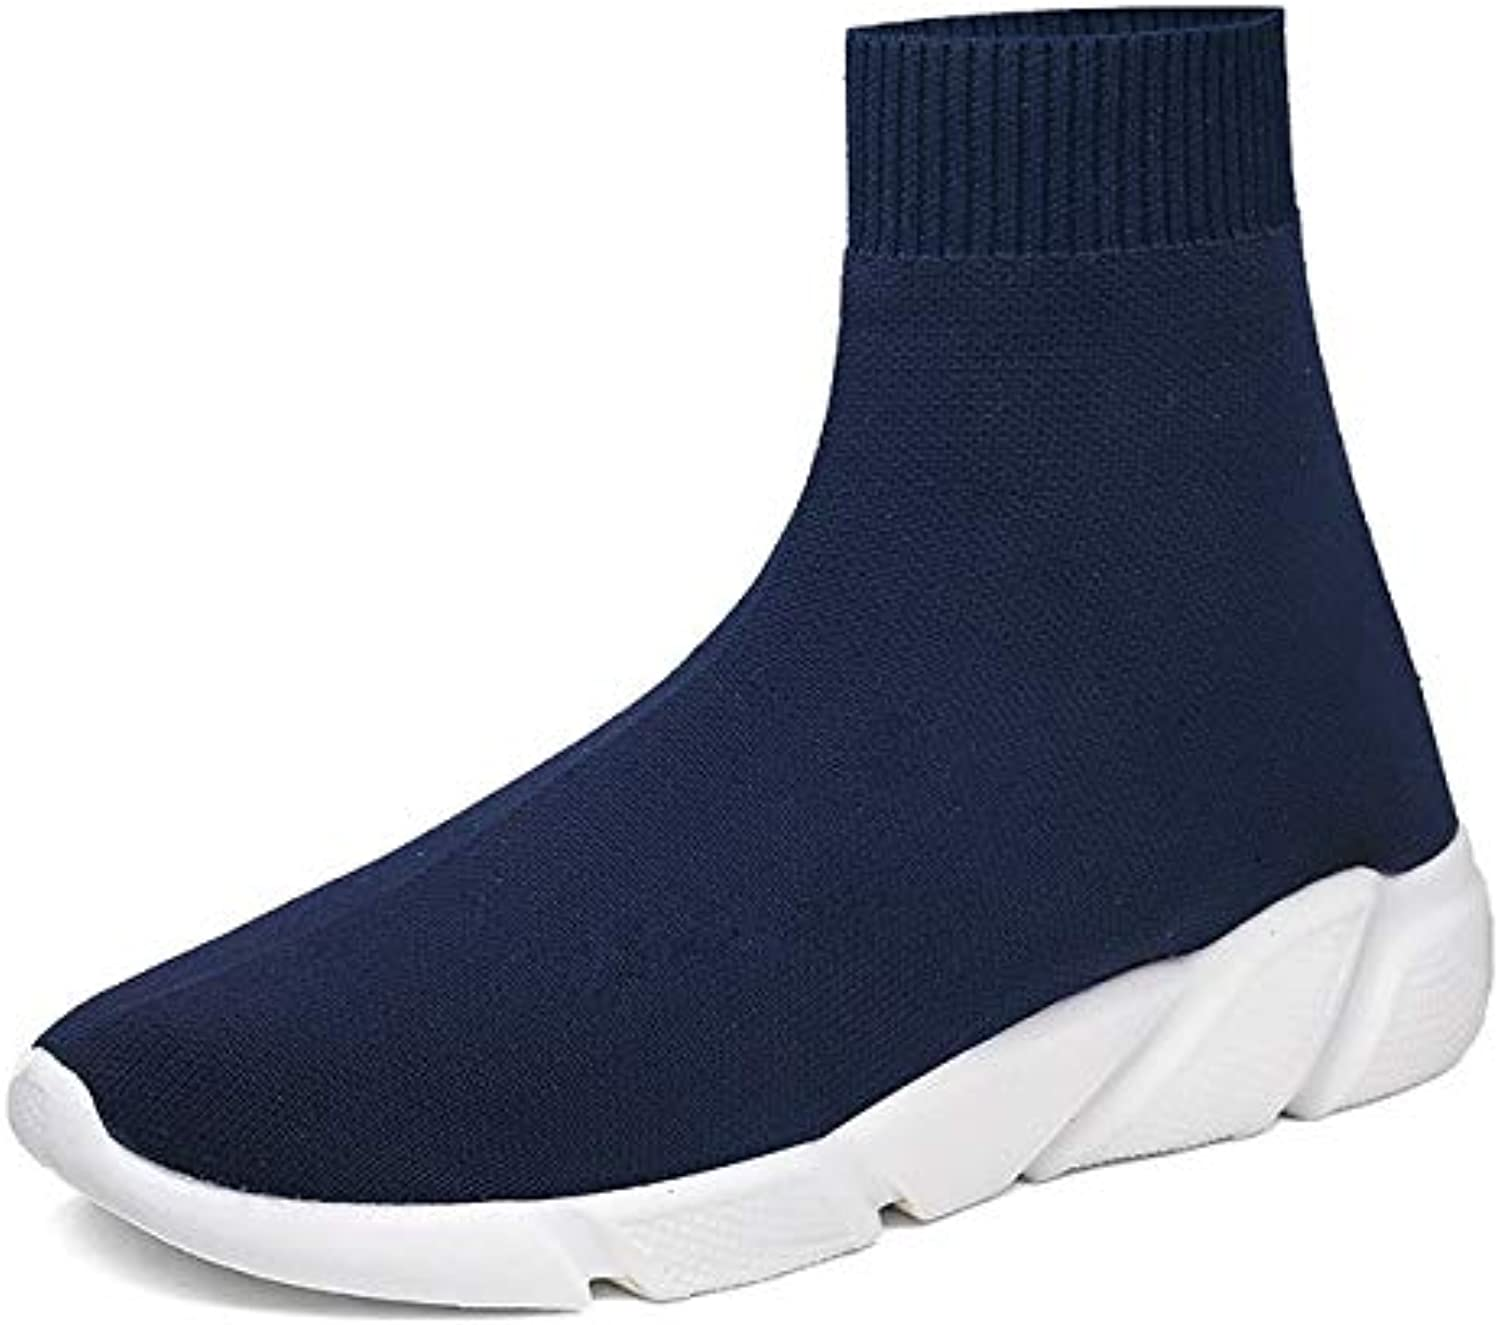 shoes for Men or Women hyx Knit Upper Breathable Sport Sock Boots Chunky Sneakers High Top Running shoes for Men Women, shoes Size 46 (color   bluee)